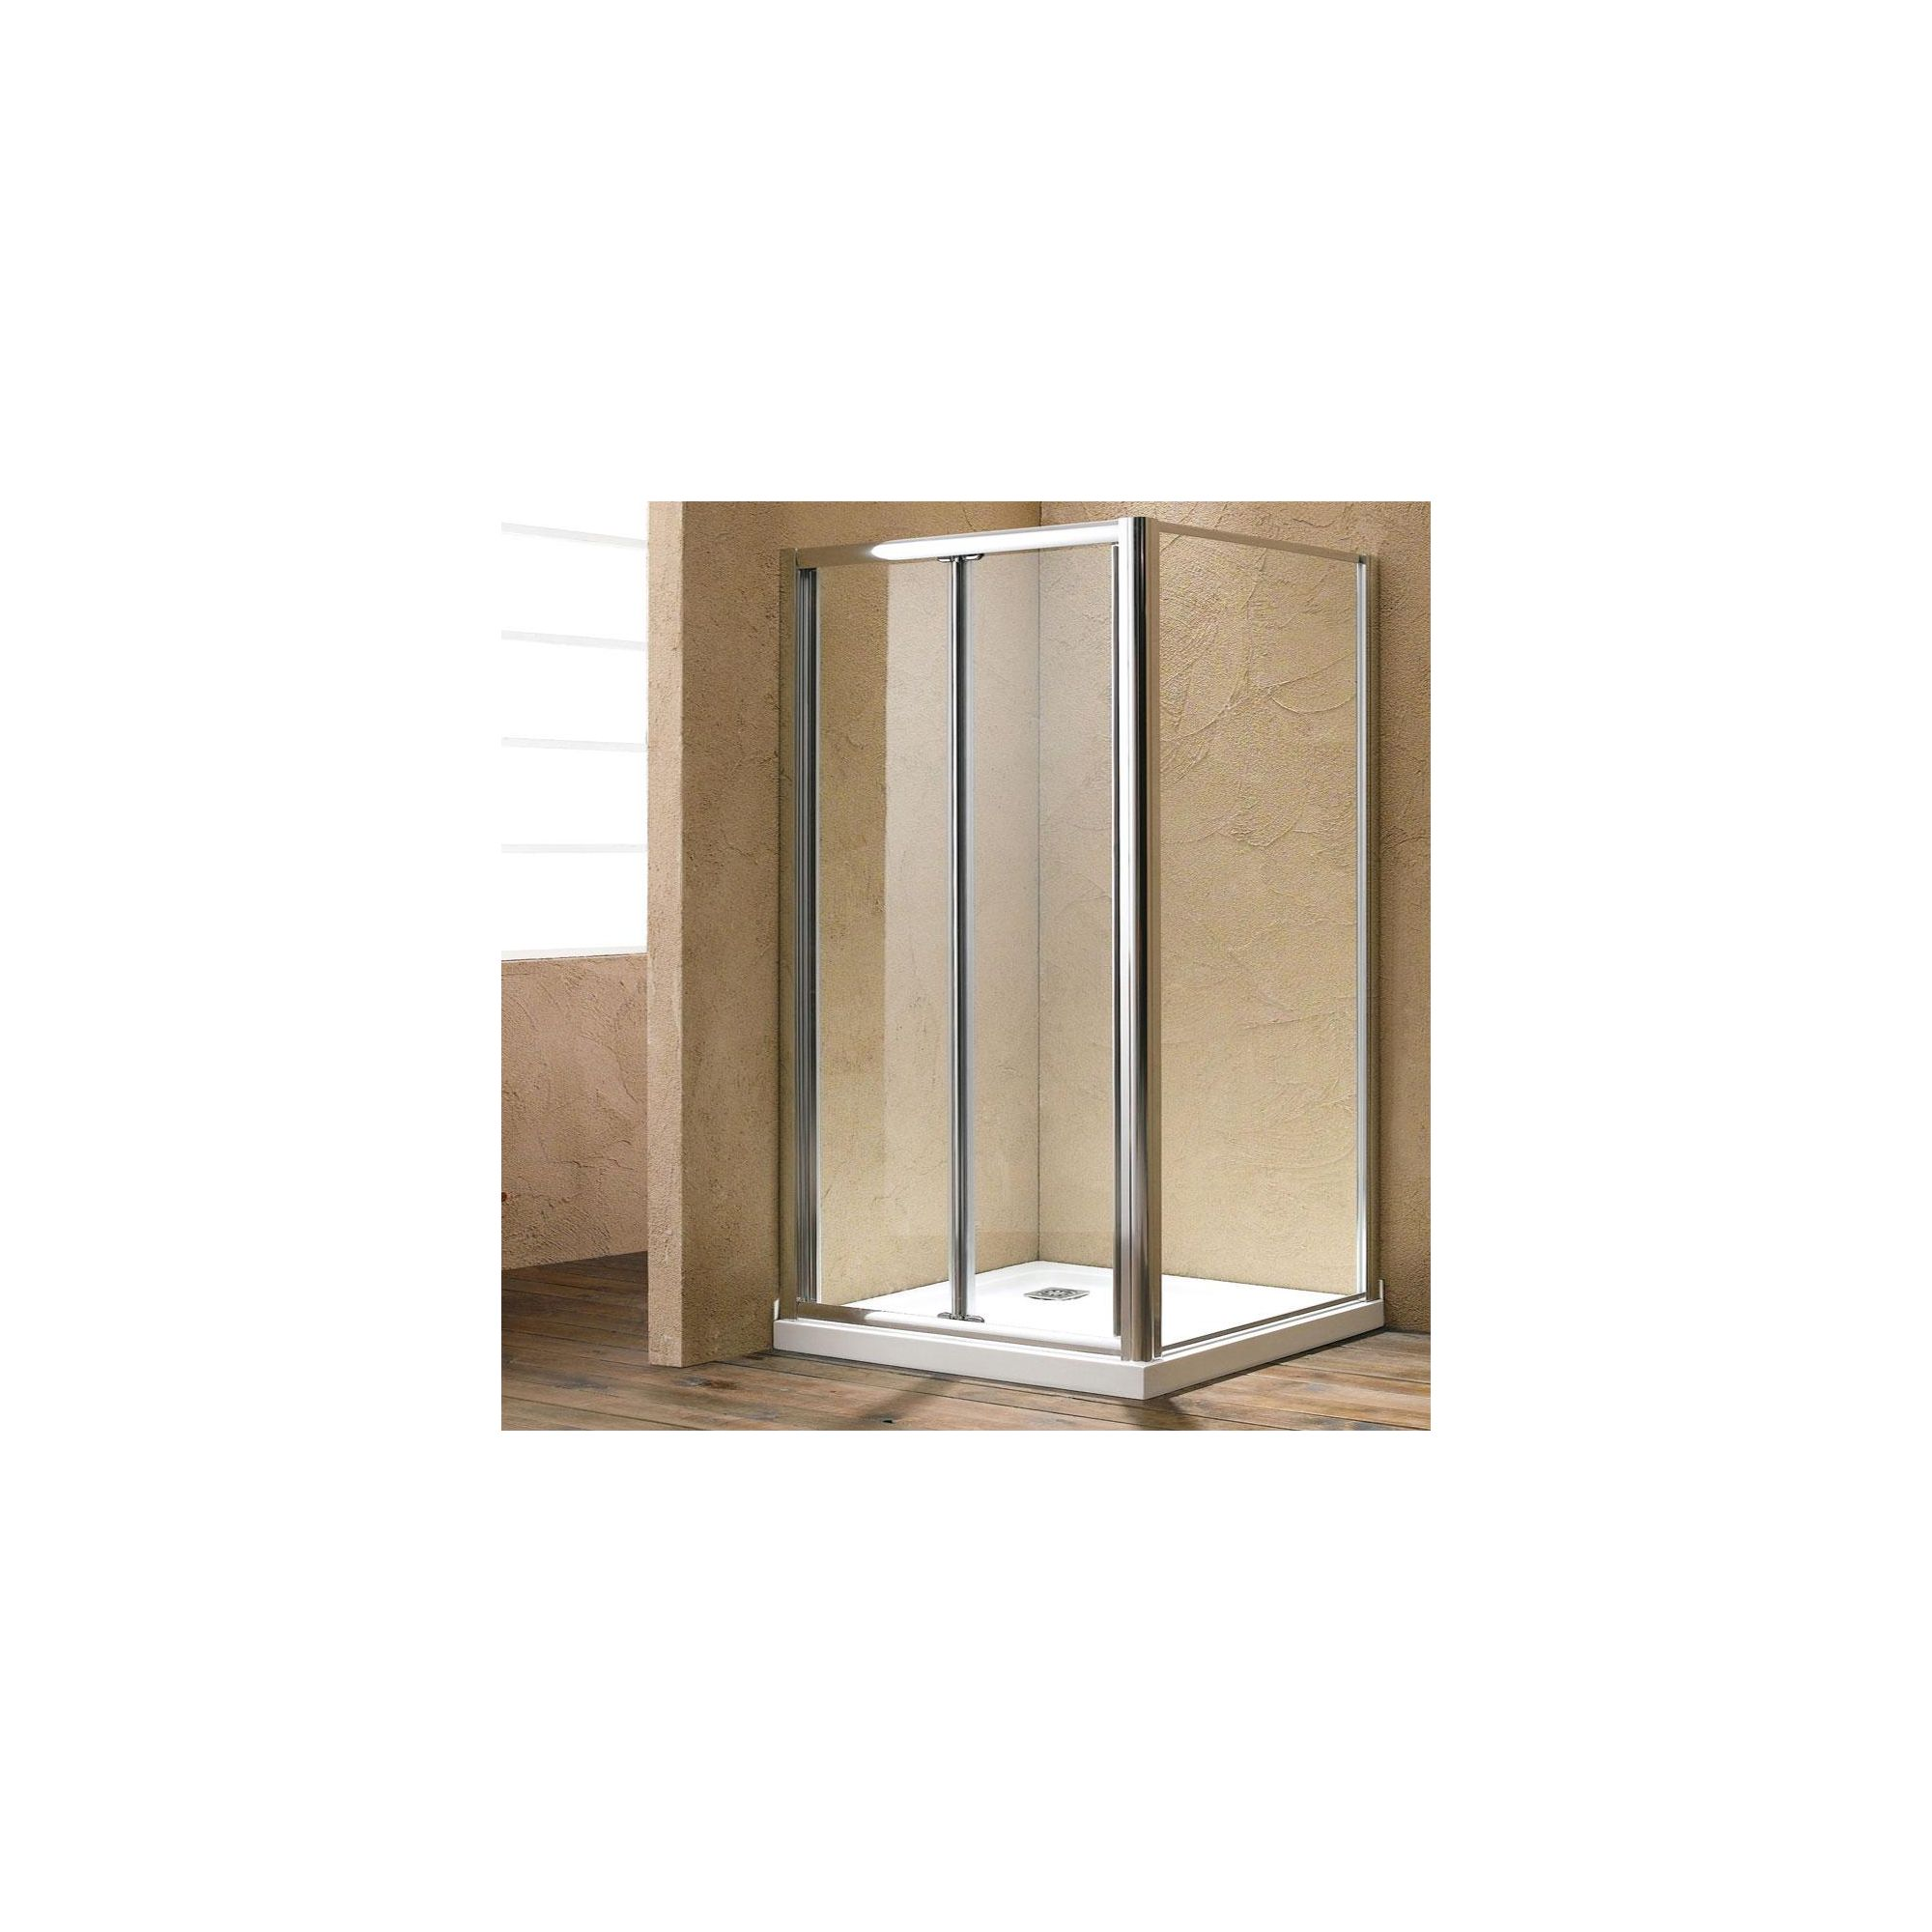 Duchy Style Single Bi-Fold Door Shower Enclosure, 900mm x 760mm, 6mm Glass, Low Profile Tray at Tesco Direct